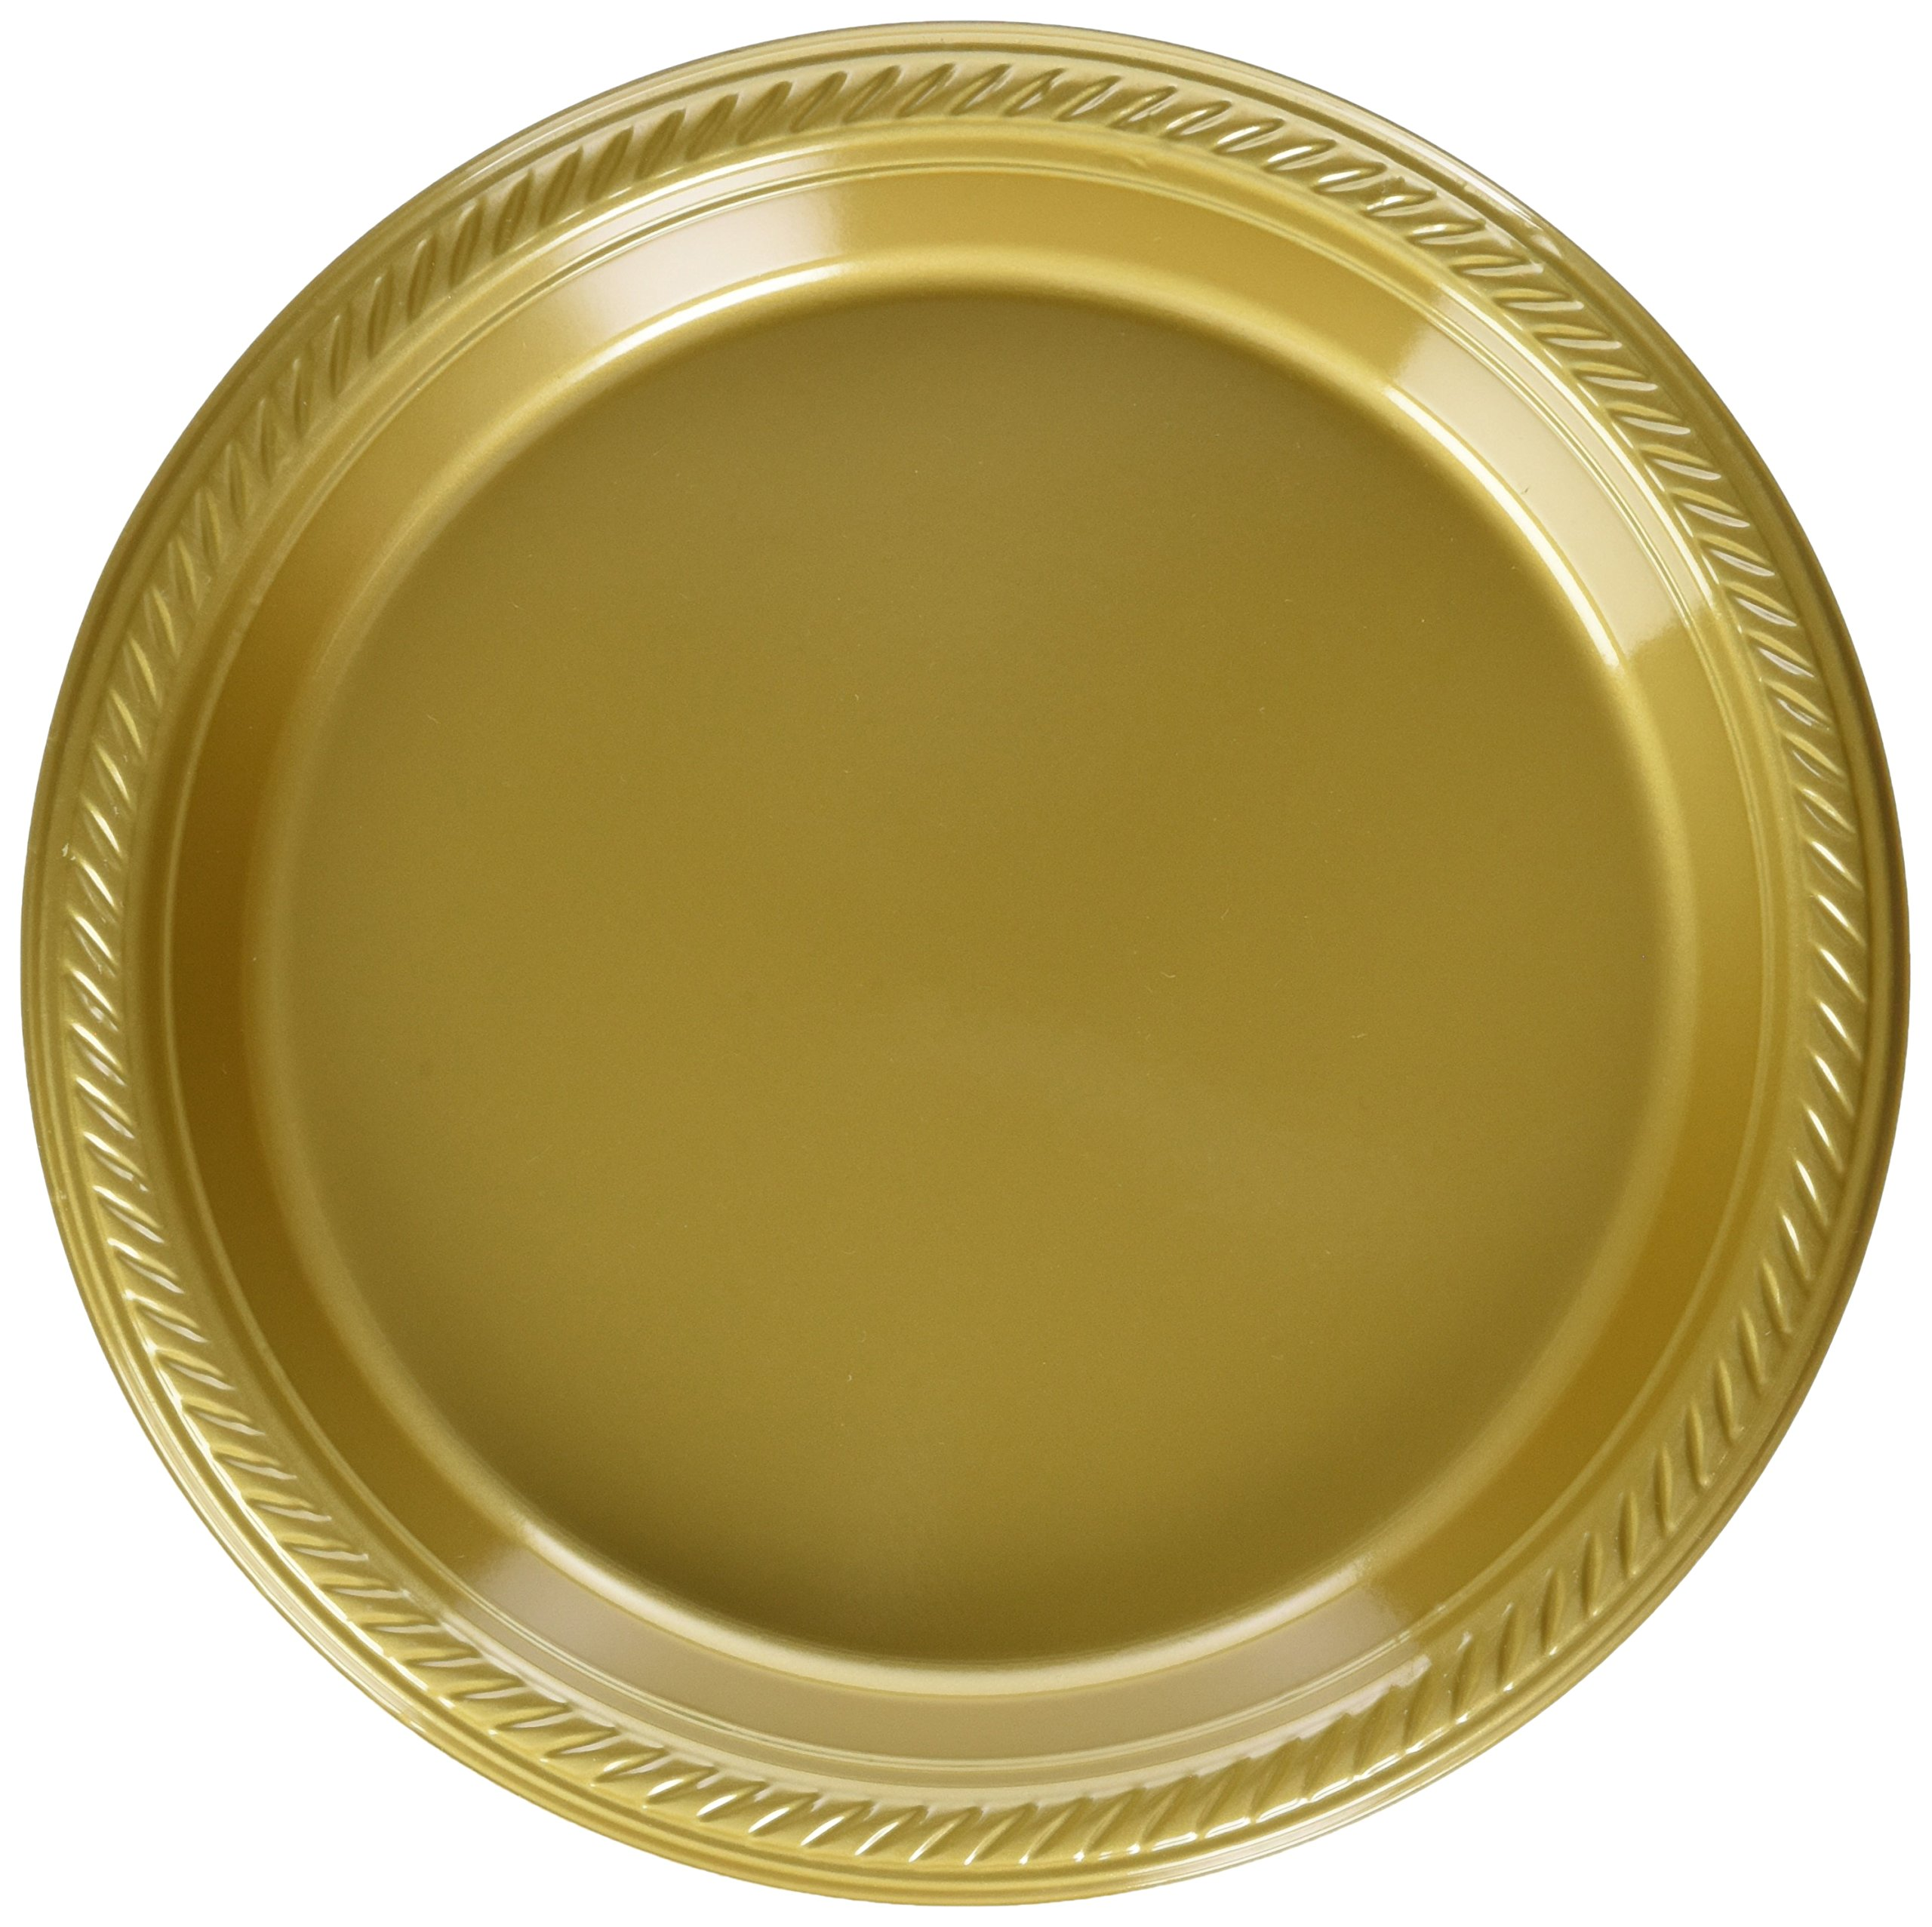 Amscan Big Saver Pack Dessert Plastic Plates Party Supplies (300 Piece), Gold, 7 inch